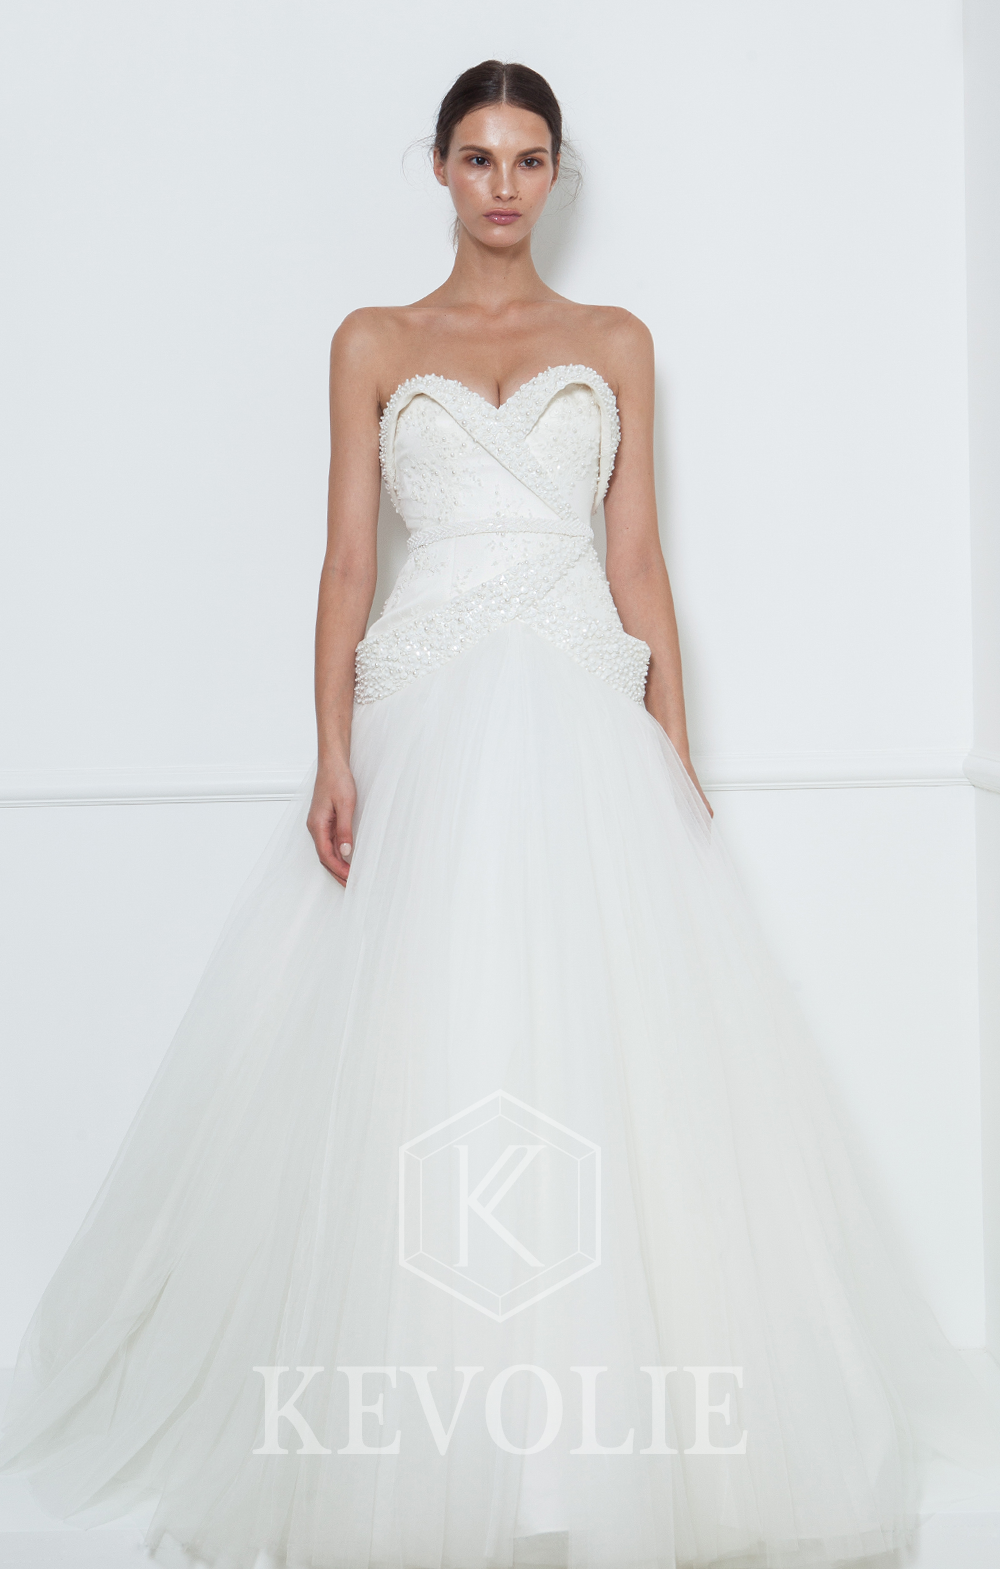 BRIDAL COLLECTION 2015-LOOK 8